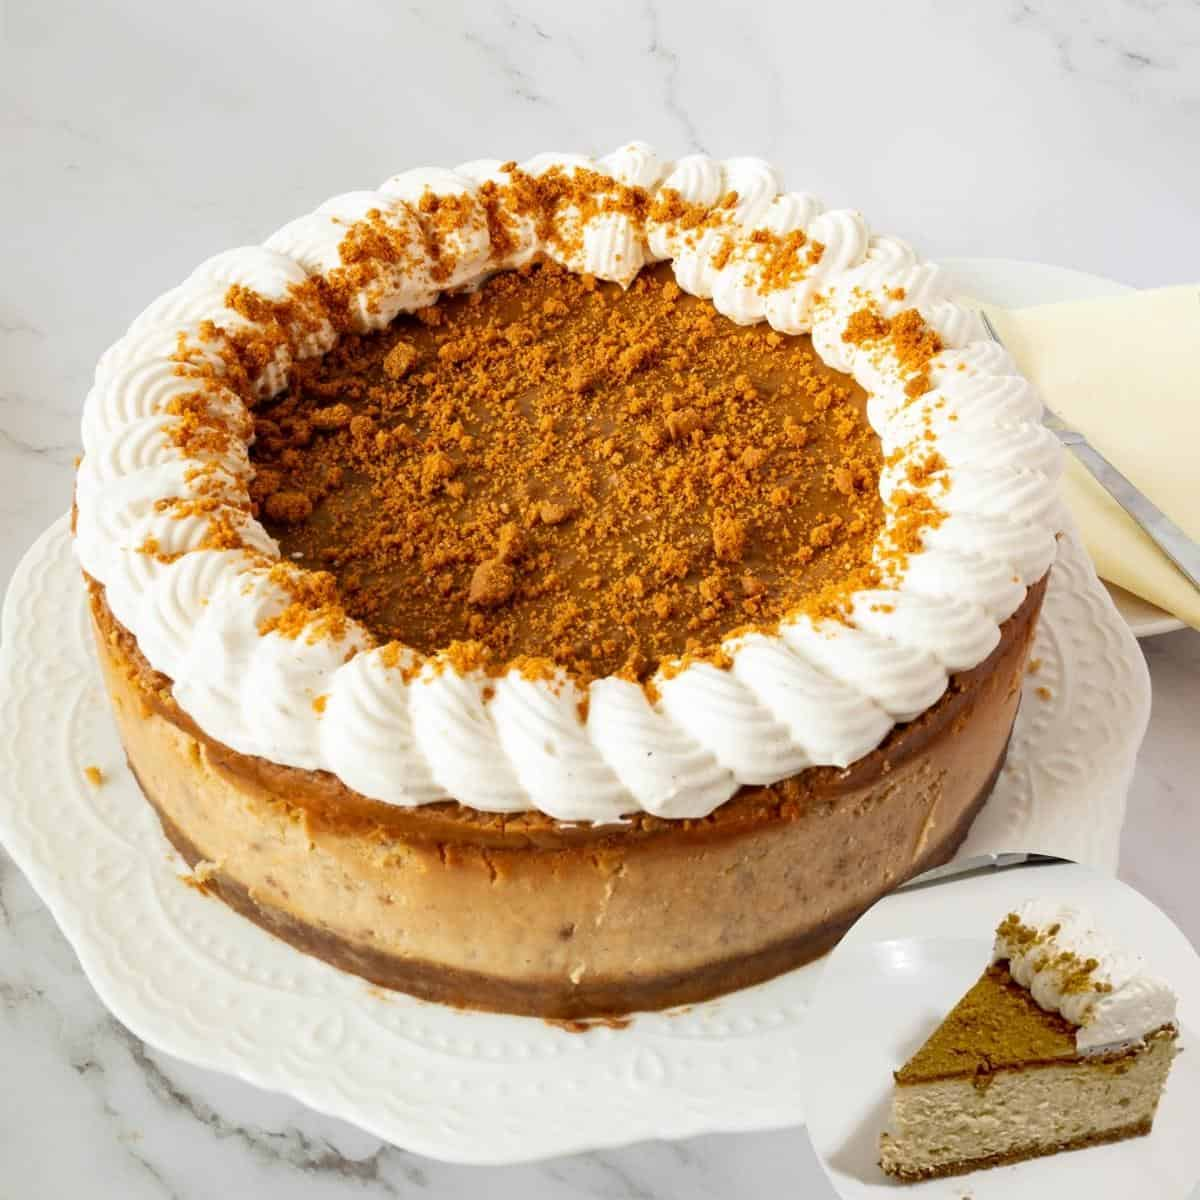 A cheesecake on a table with biscoff glaze.